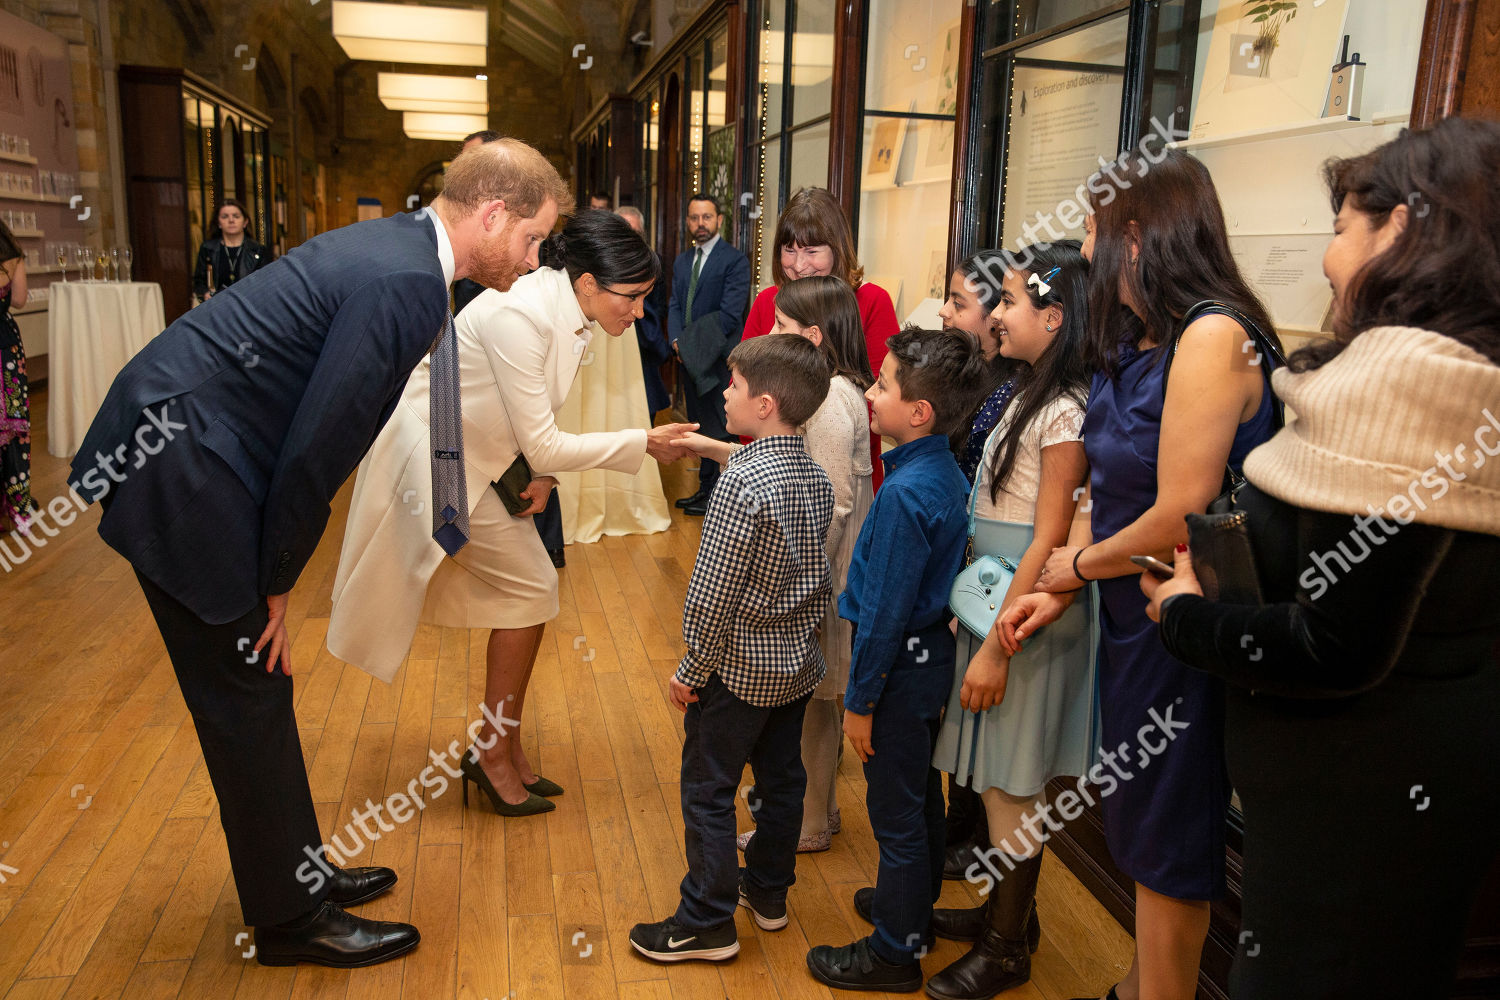 c0fddf2d4 Prince Harry Meghan Duchess Sussex attend gala Editorial Stock Photo ...